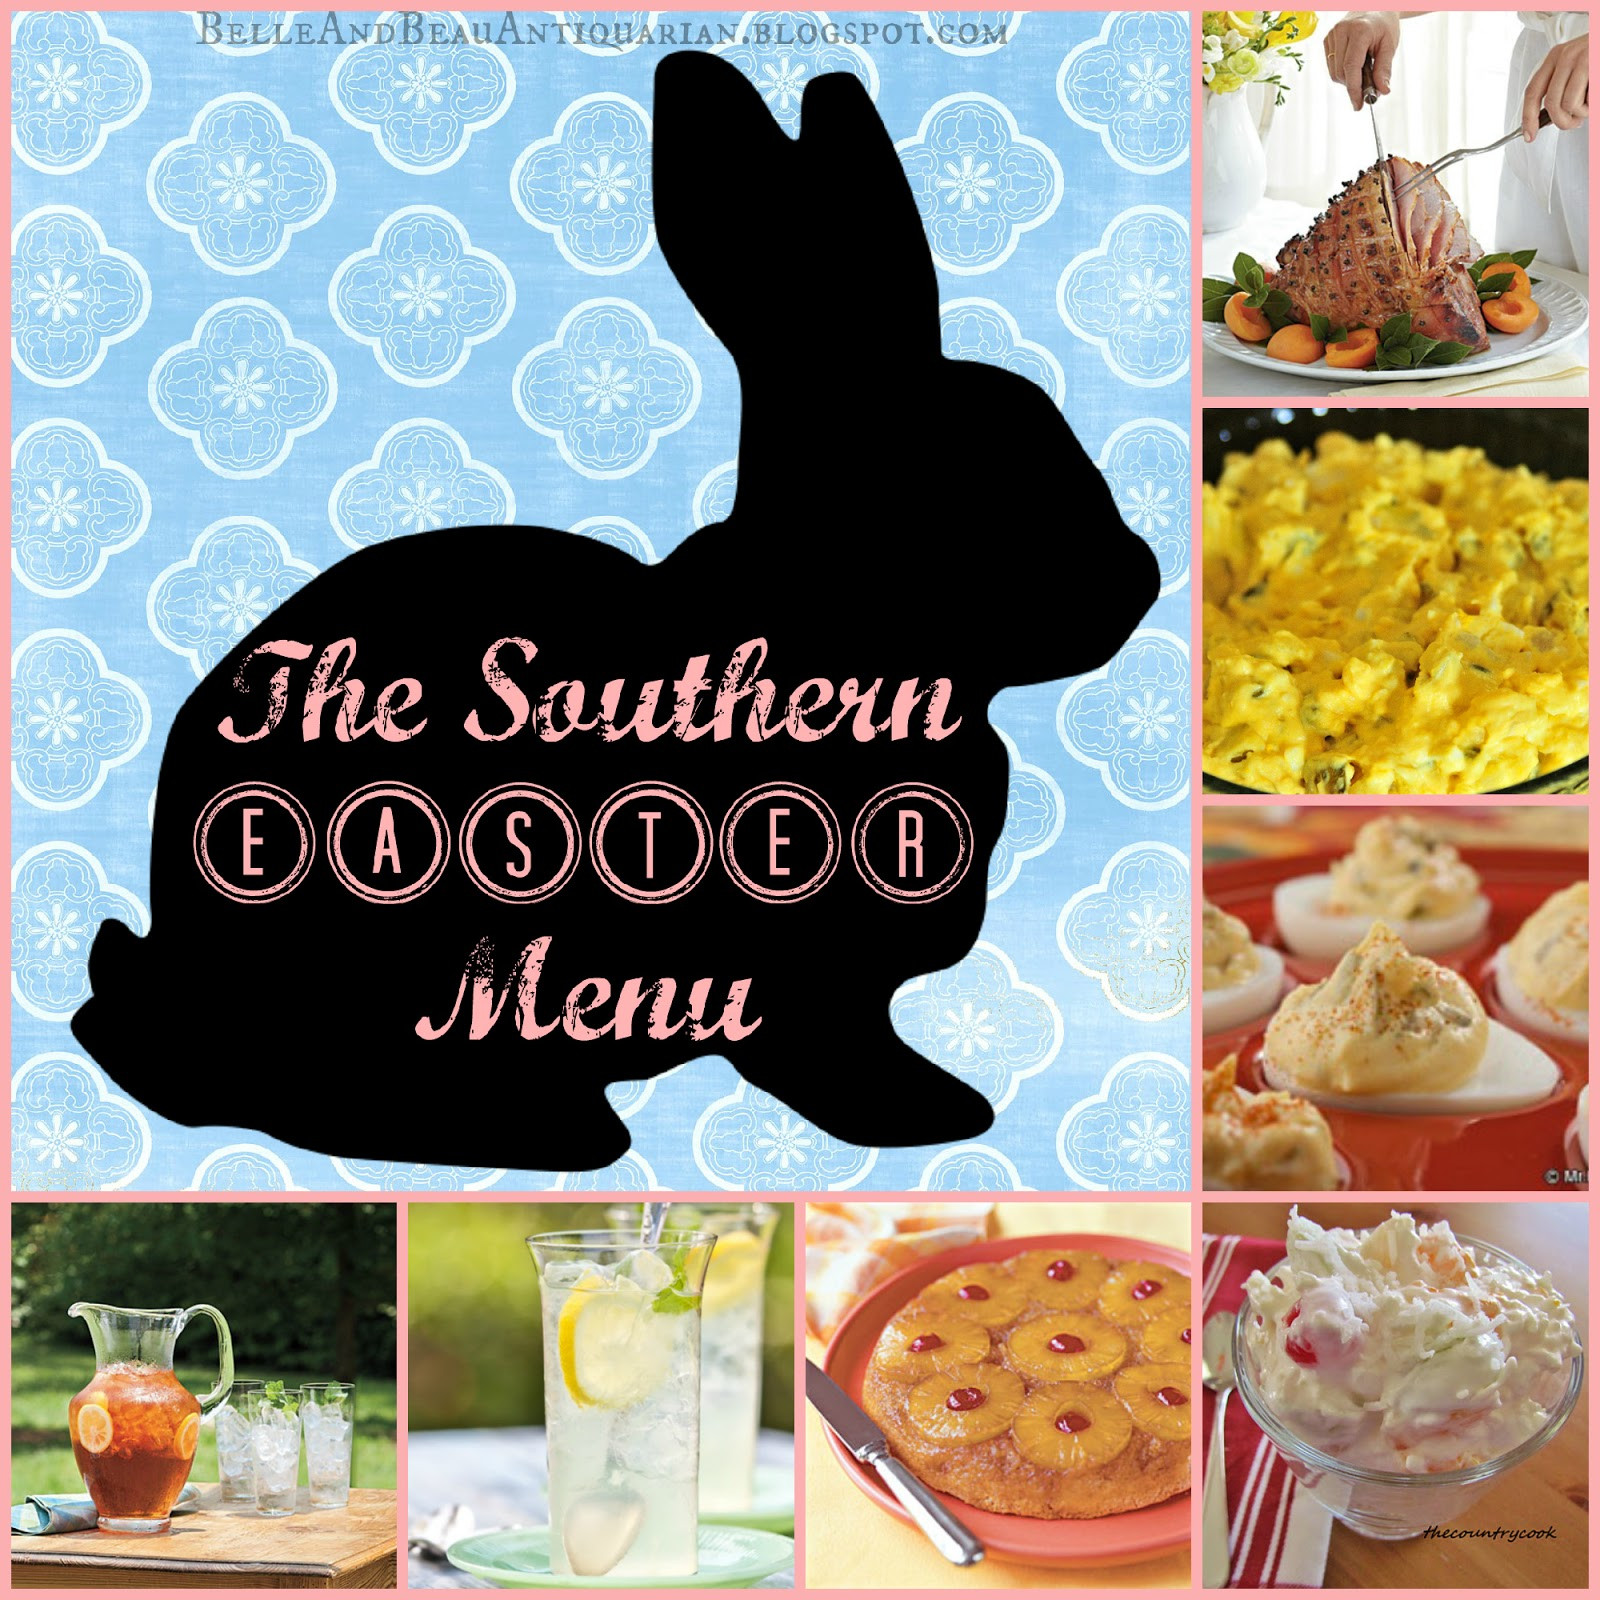 Southern Easter Dinner  Belle & Beau Antiquarian The Southern Easter Menu